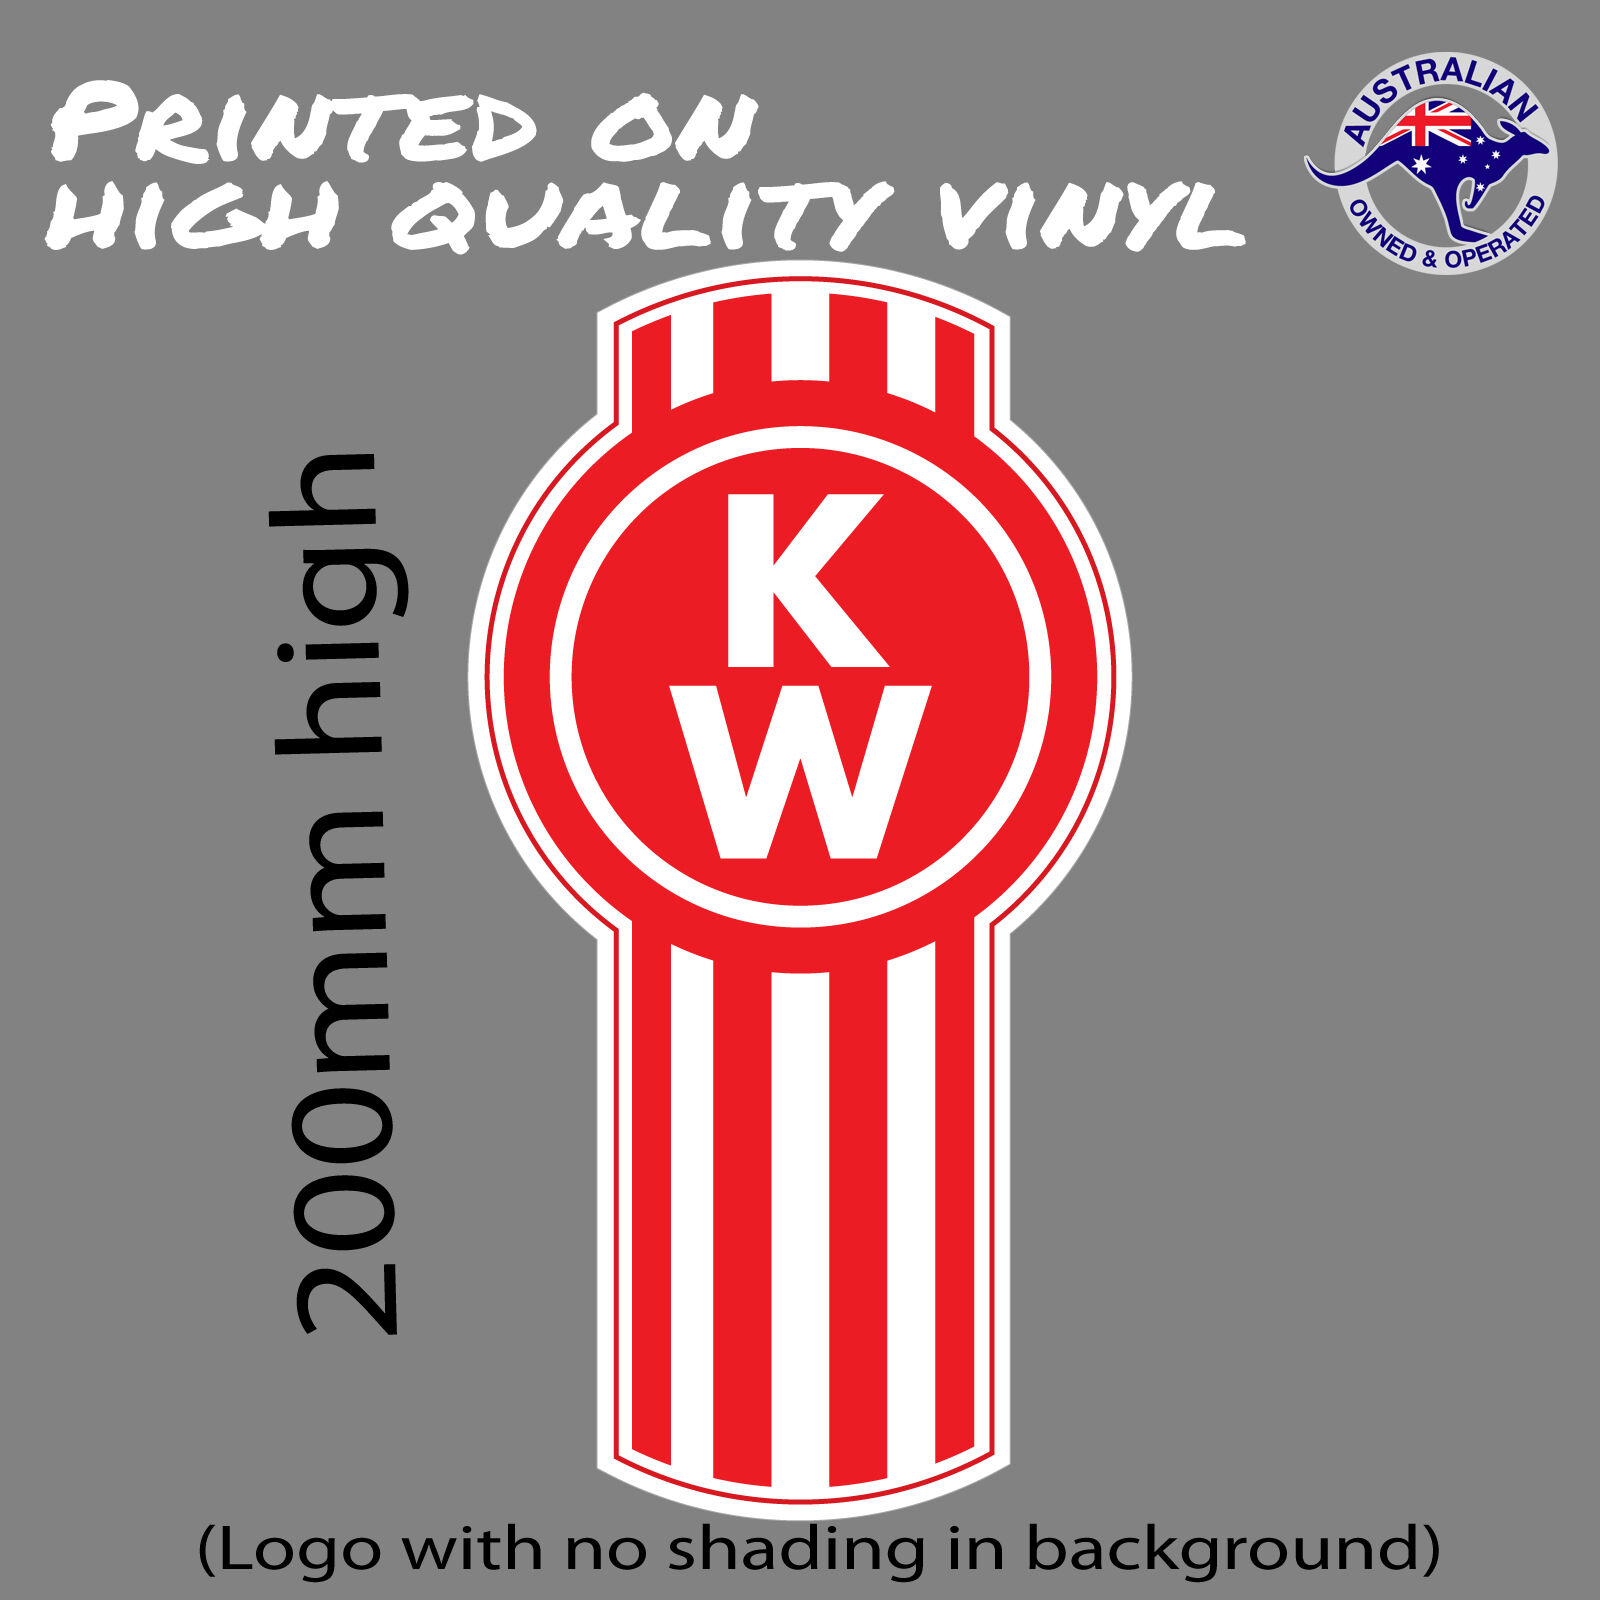 KENWORTH Trucks logo (with no shading) decal UTE TOOLBOX ...